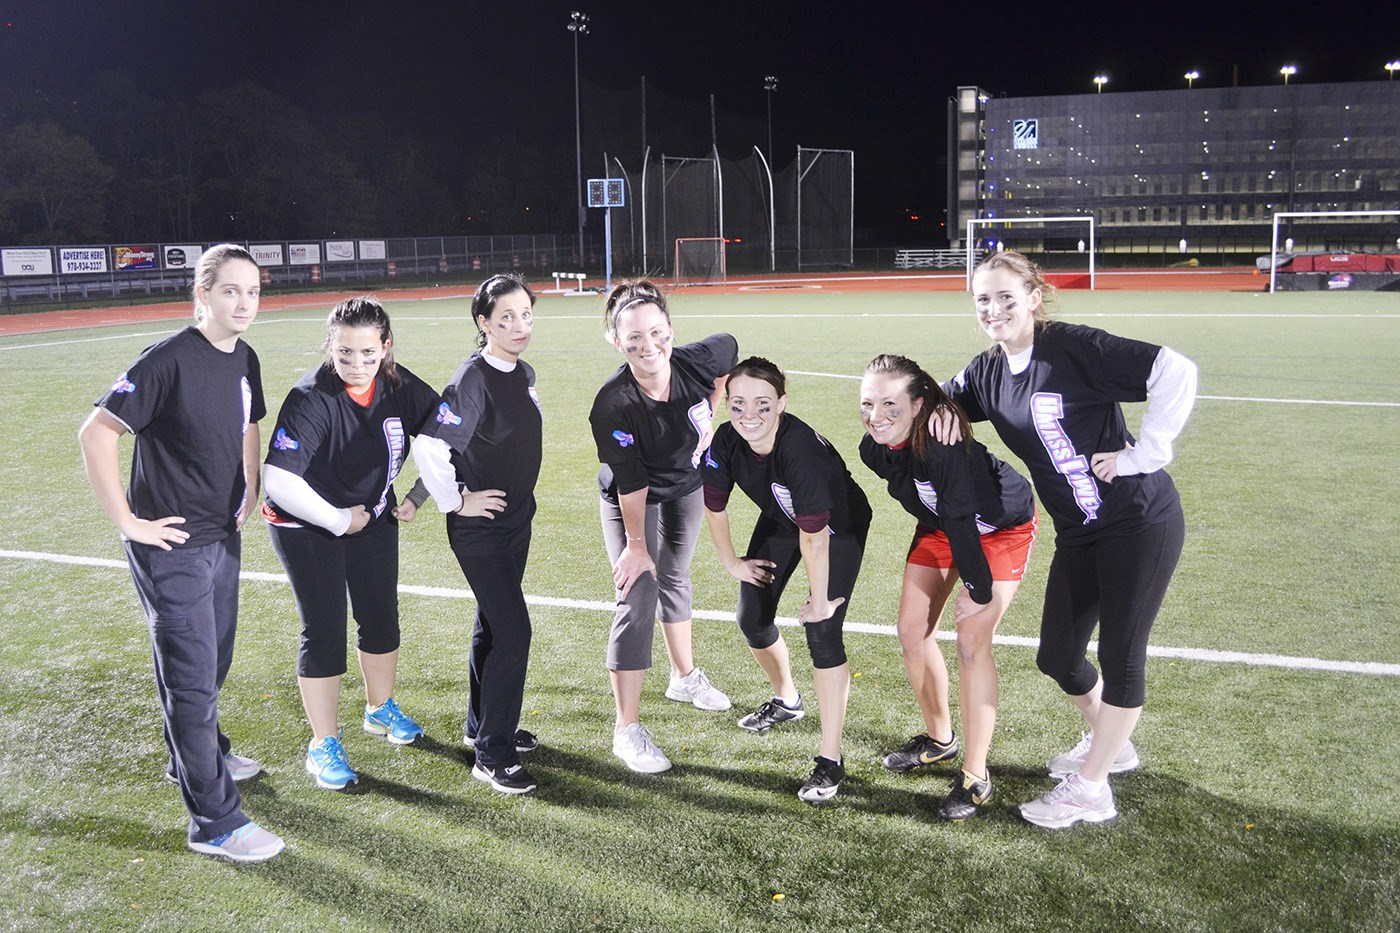 Students posing at Soccer Field At night